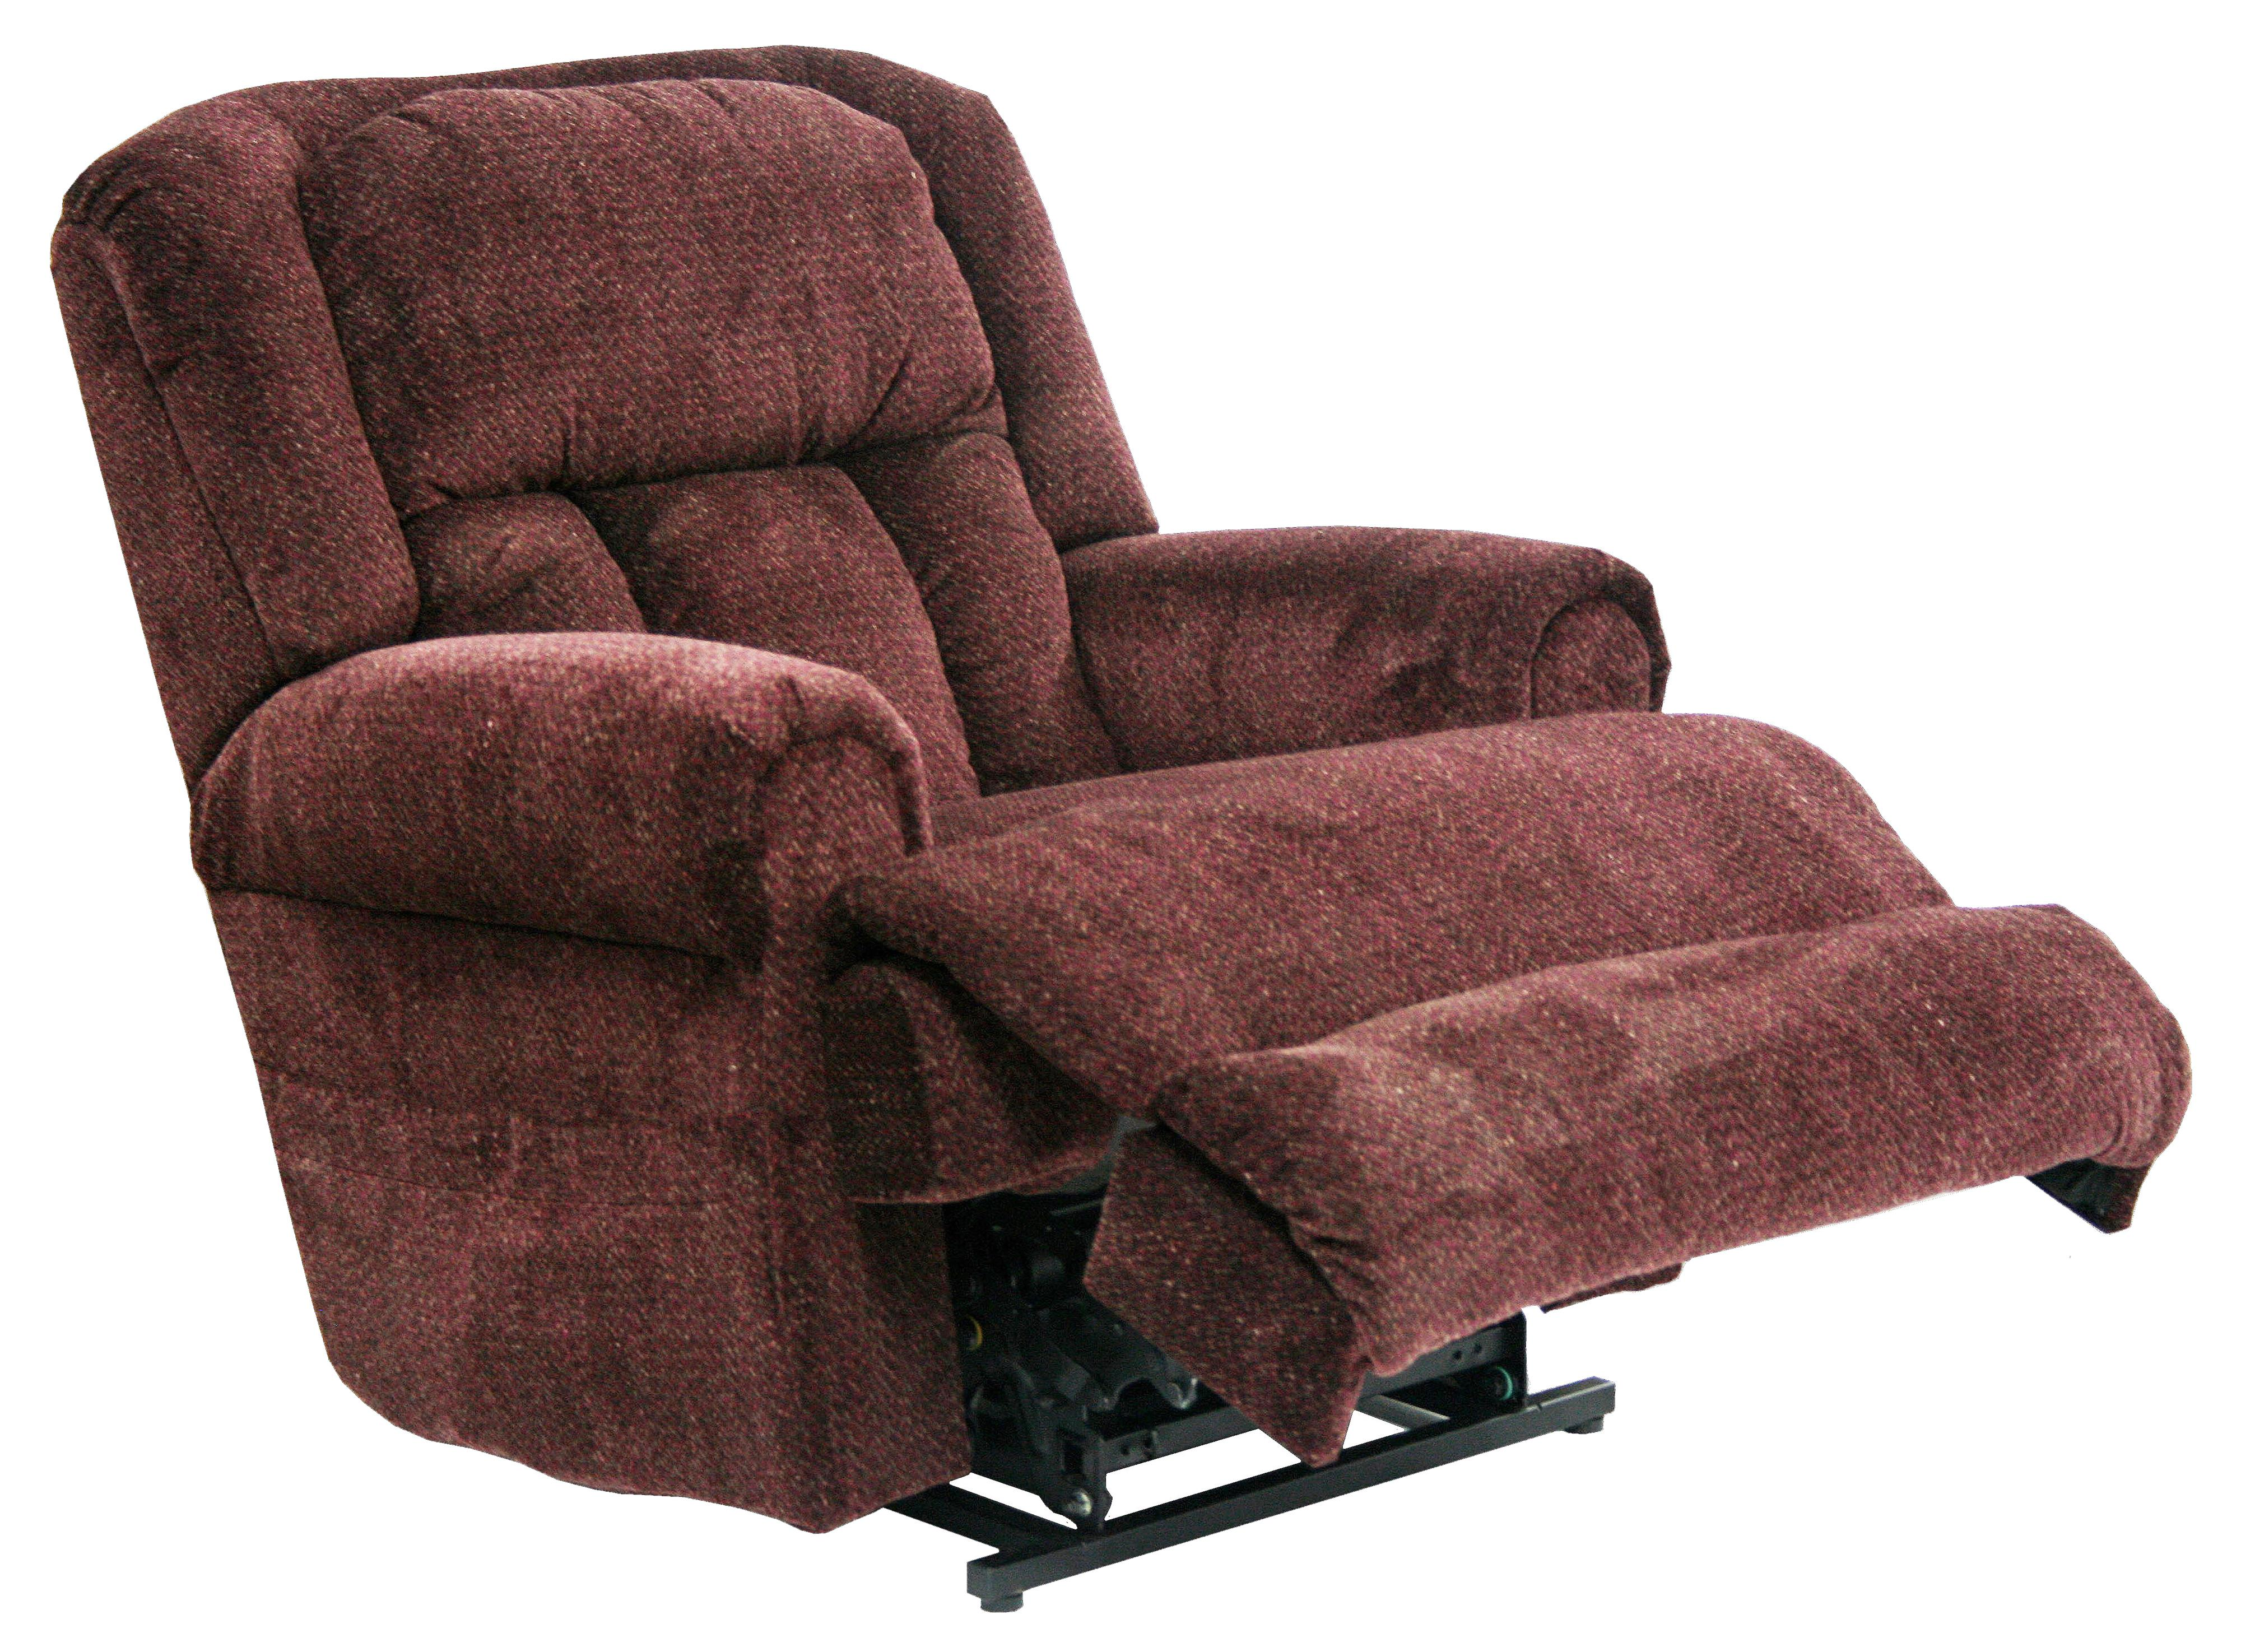 Catnapper Motion Chairs and Recliners Burns Lift Recliner - Item Number: 4847 1763-40